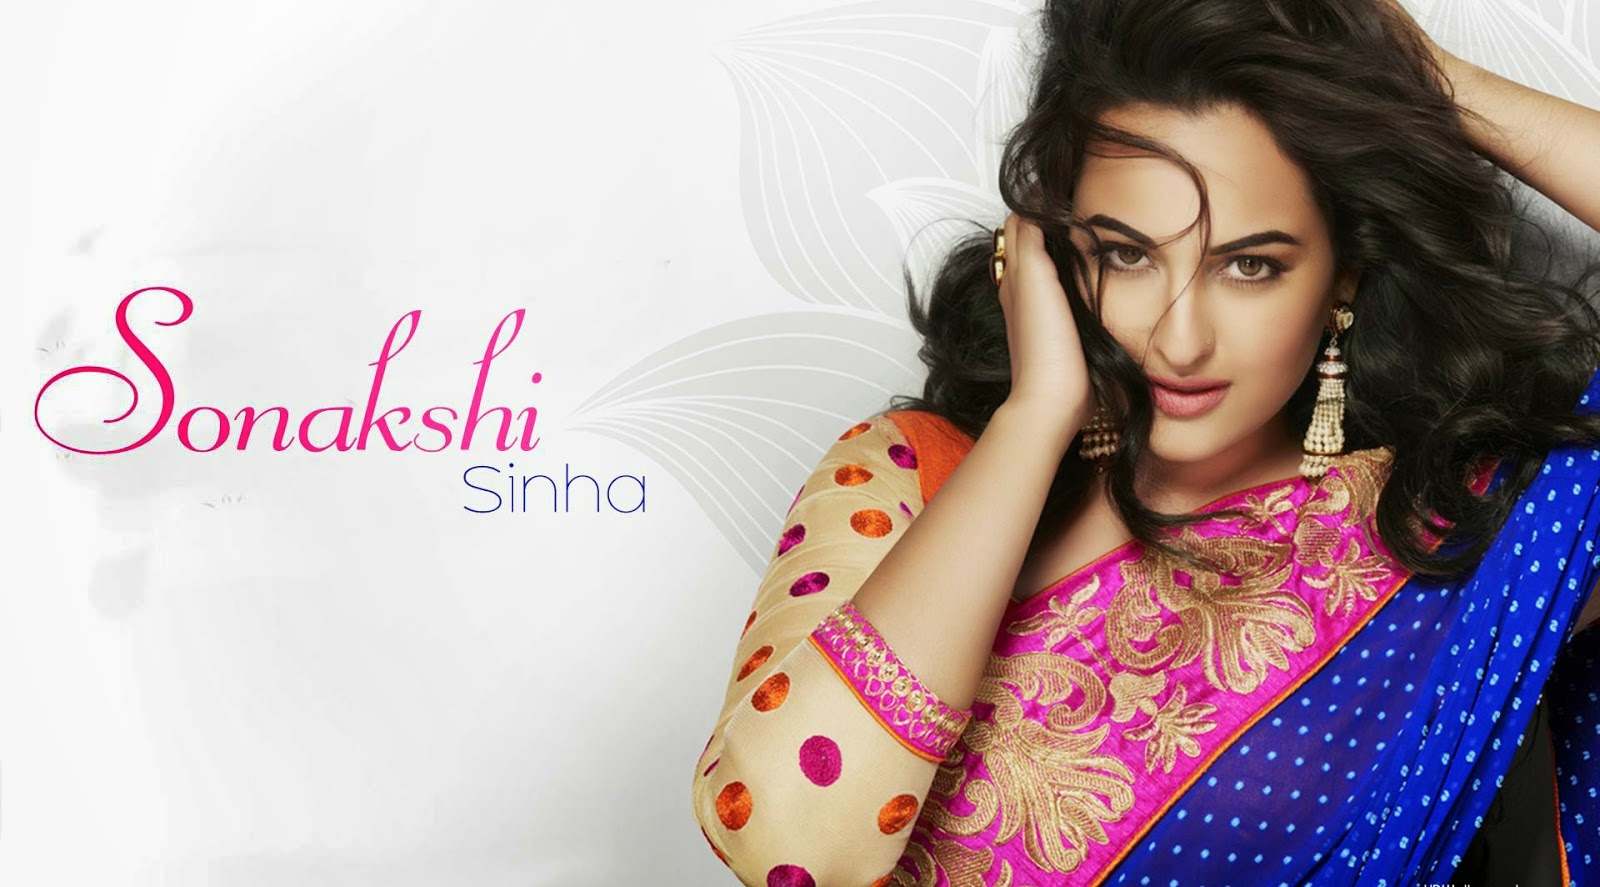 sonakshi sinha latest hd wallpapers - photo #6